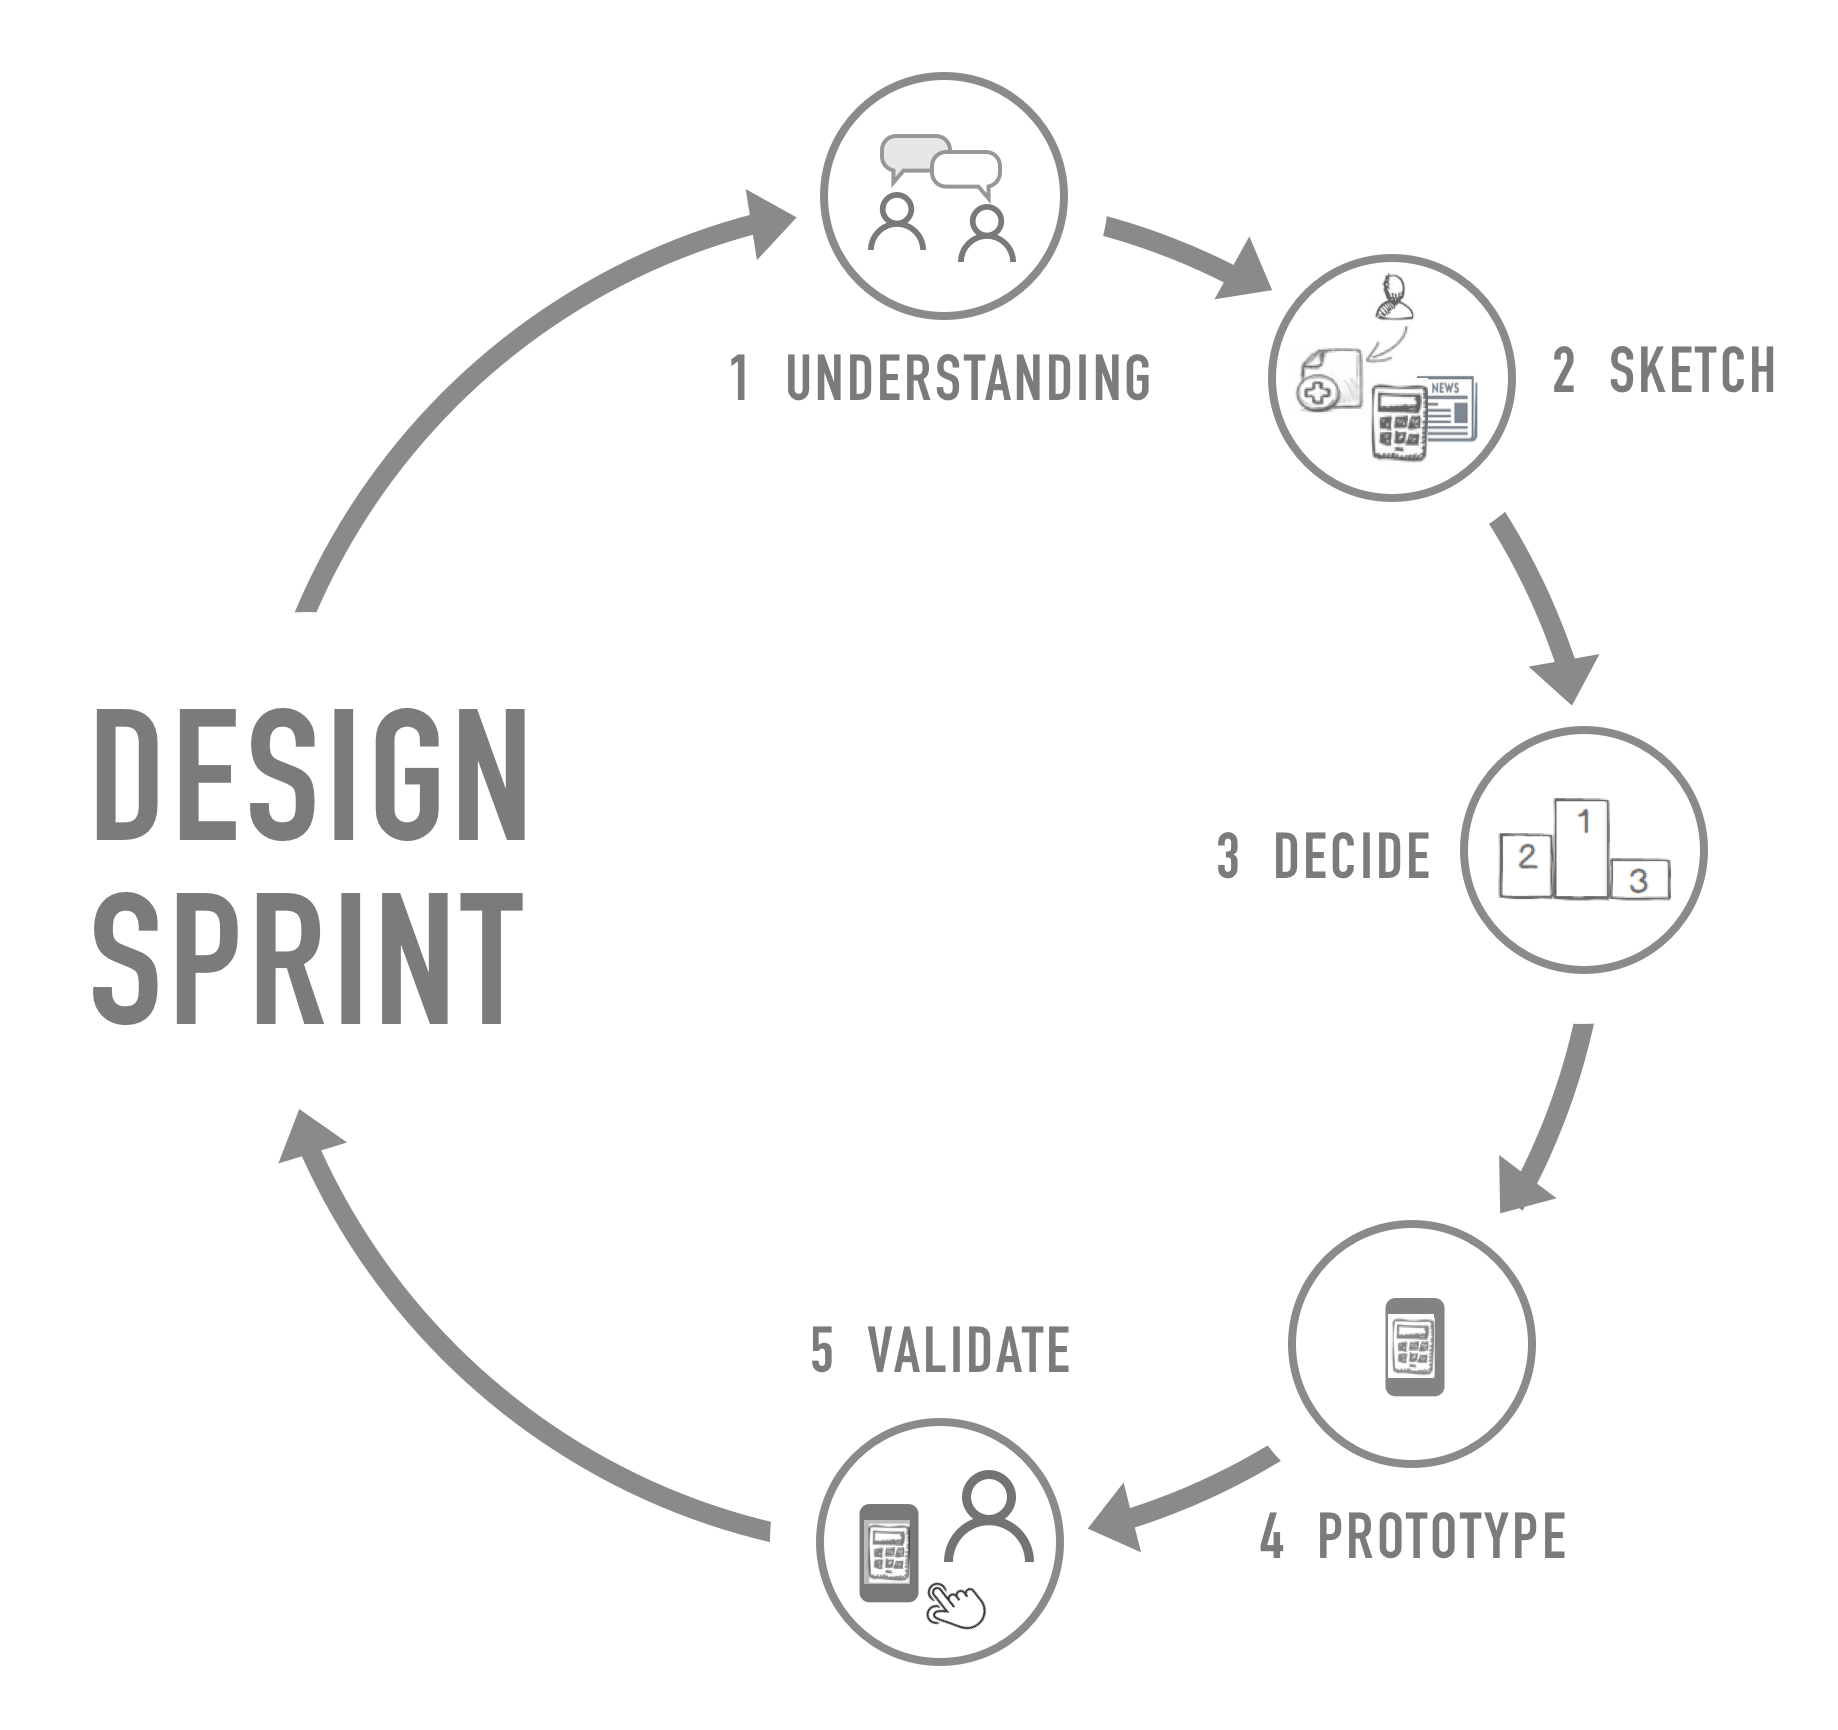 Ux Design Process With Design Sprint